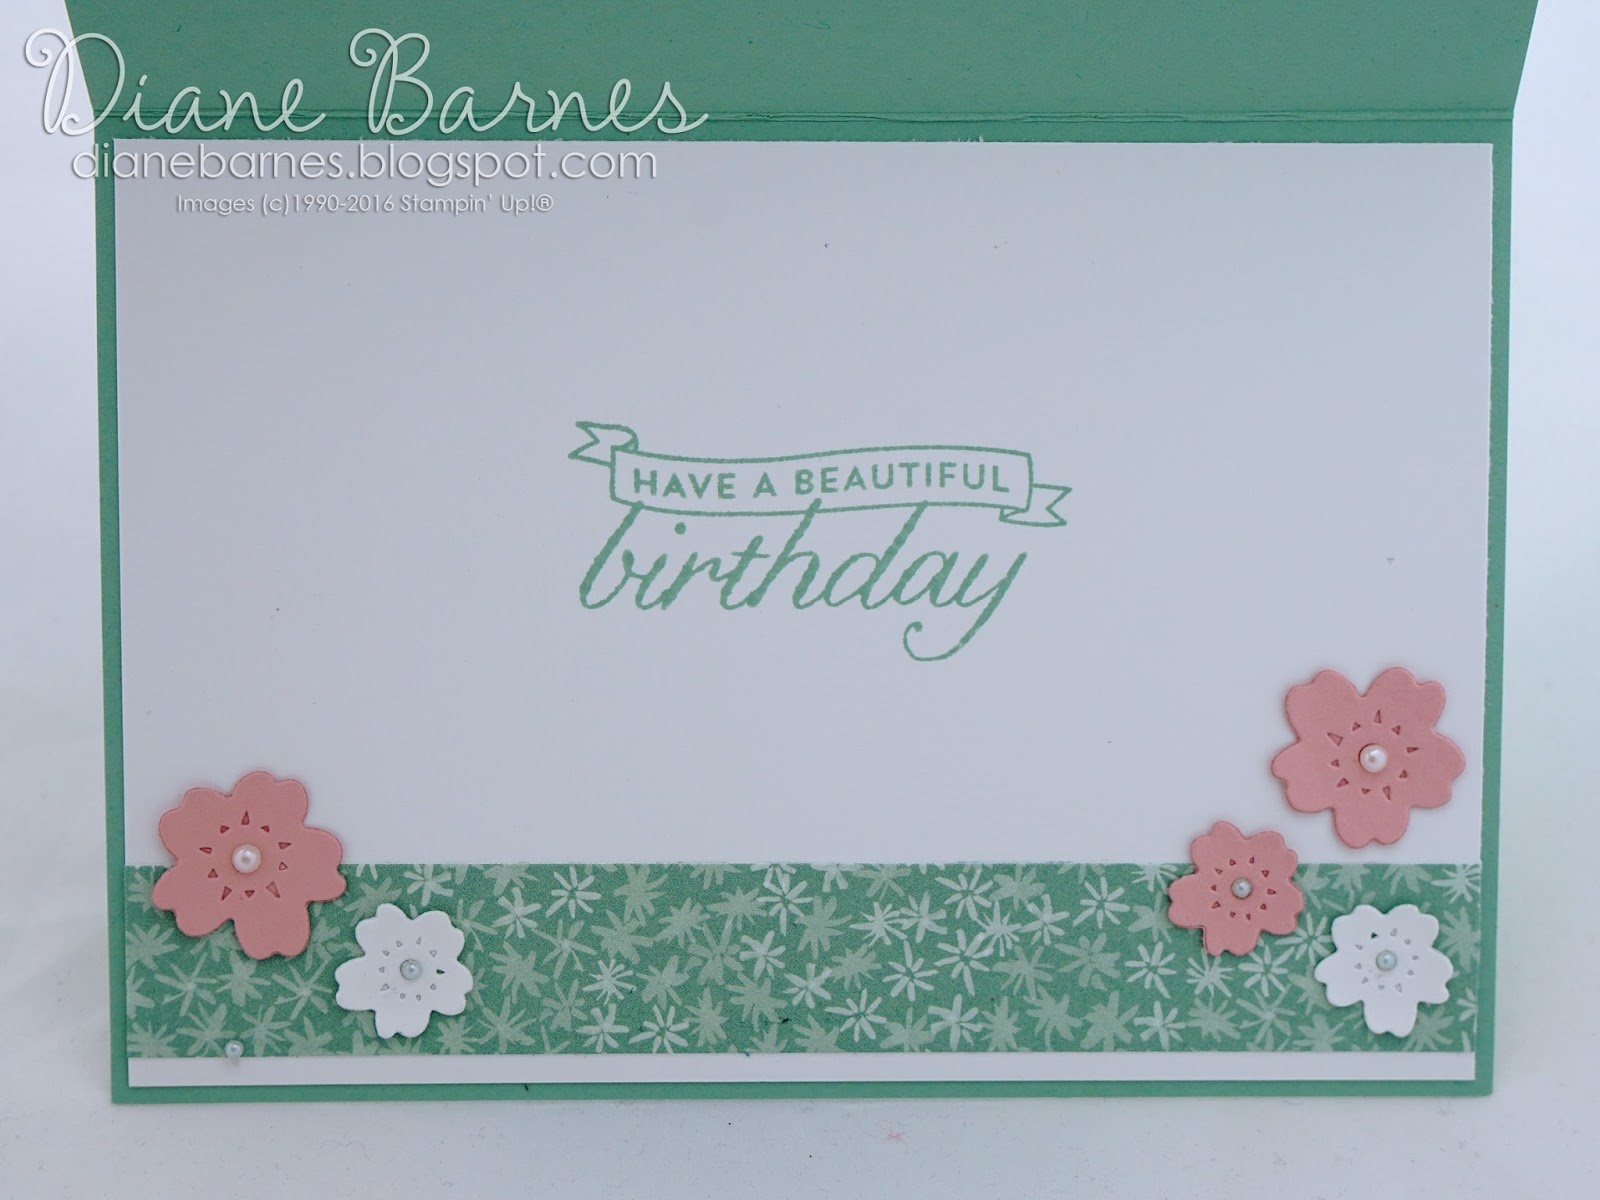 colour me happy: Bloomin\' Heart birthday - 100 years young